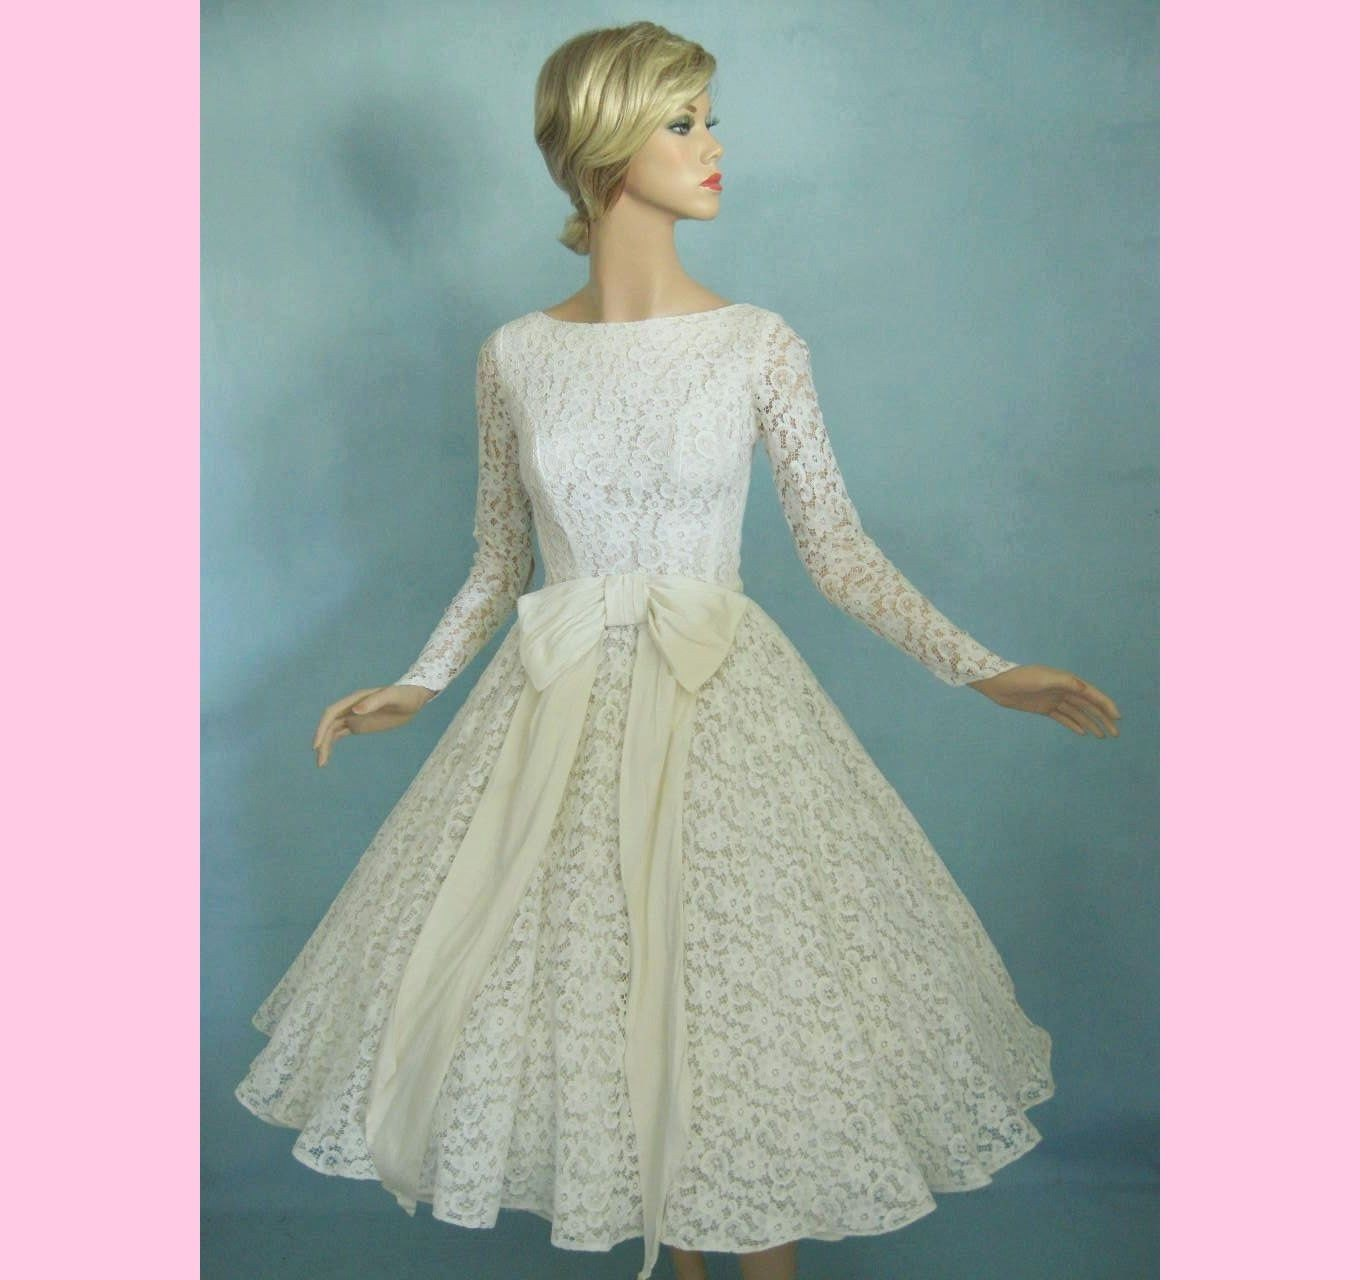 CIRCLE SKIRT 50s Lace Vintage Wedding Prom Dress By